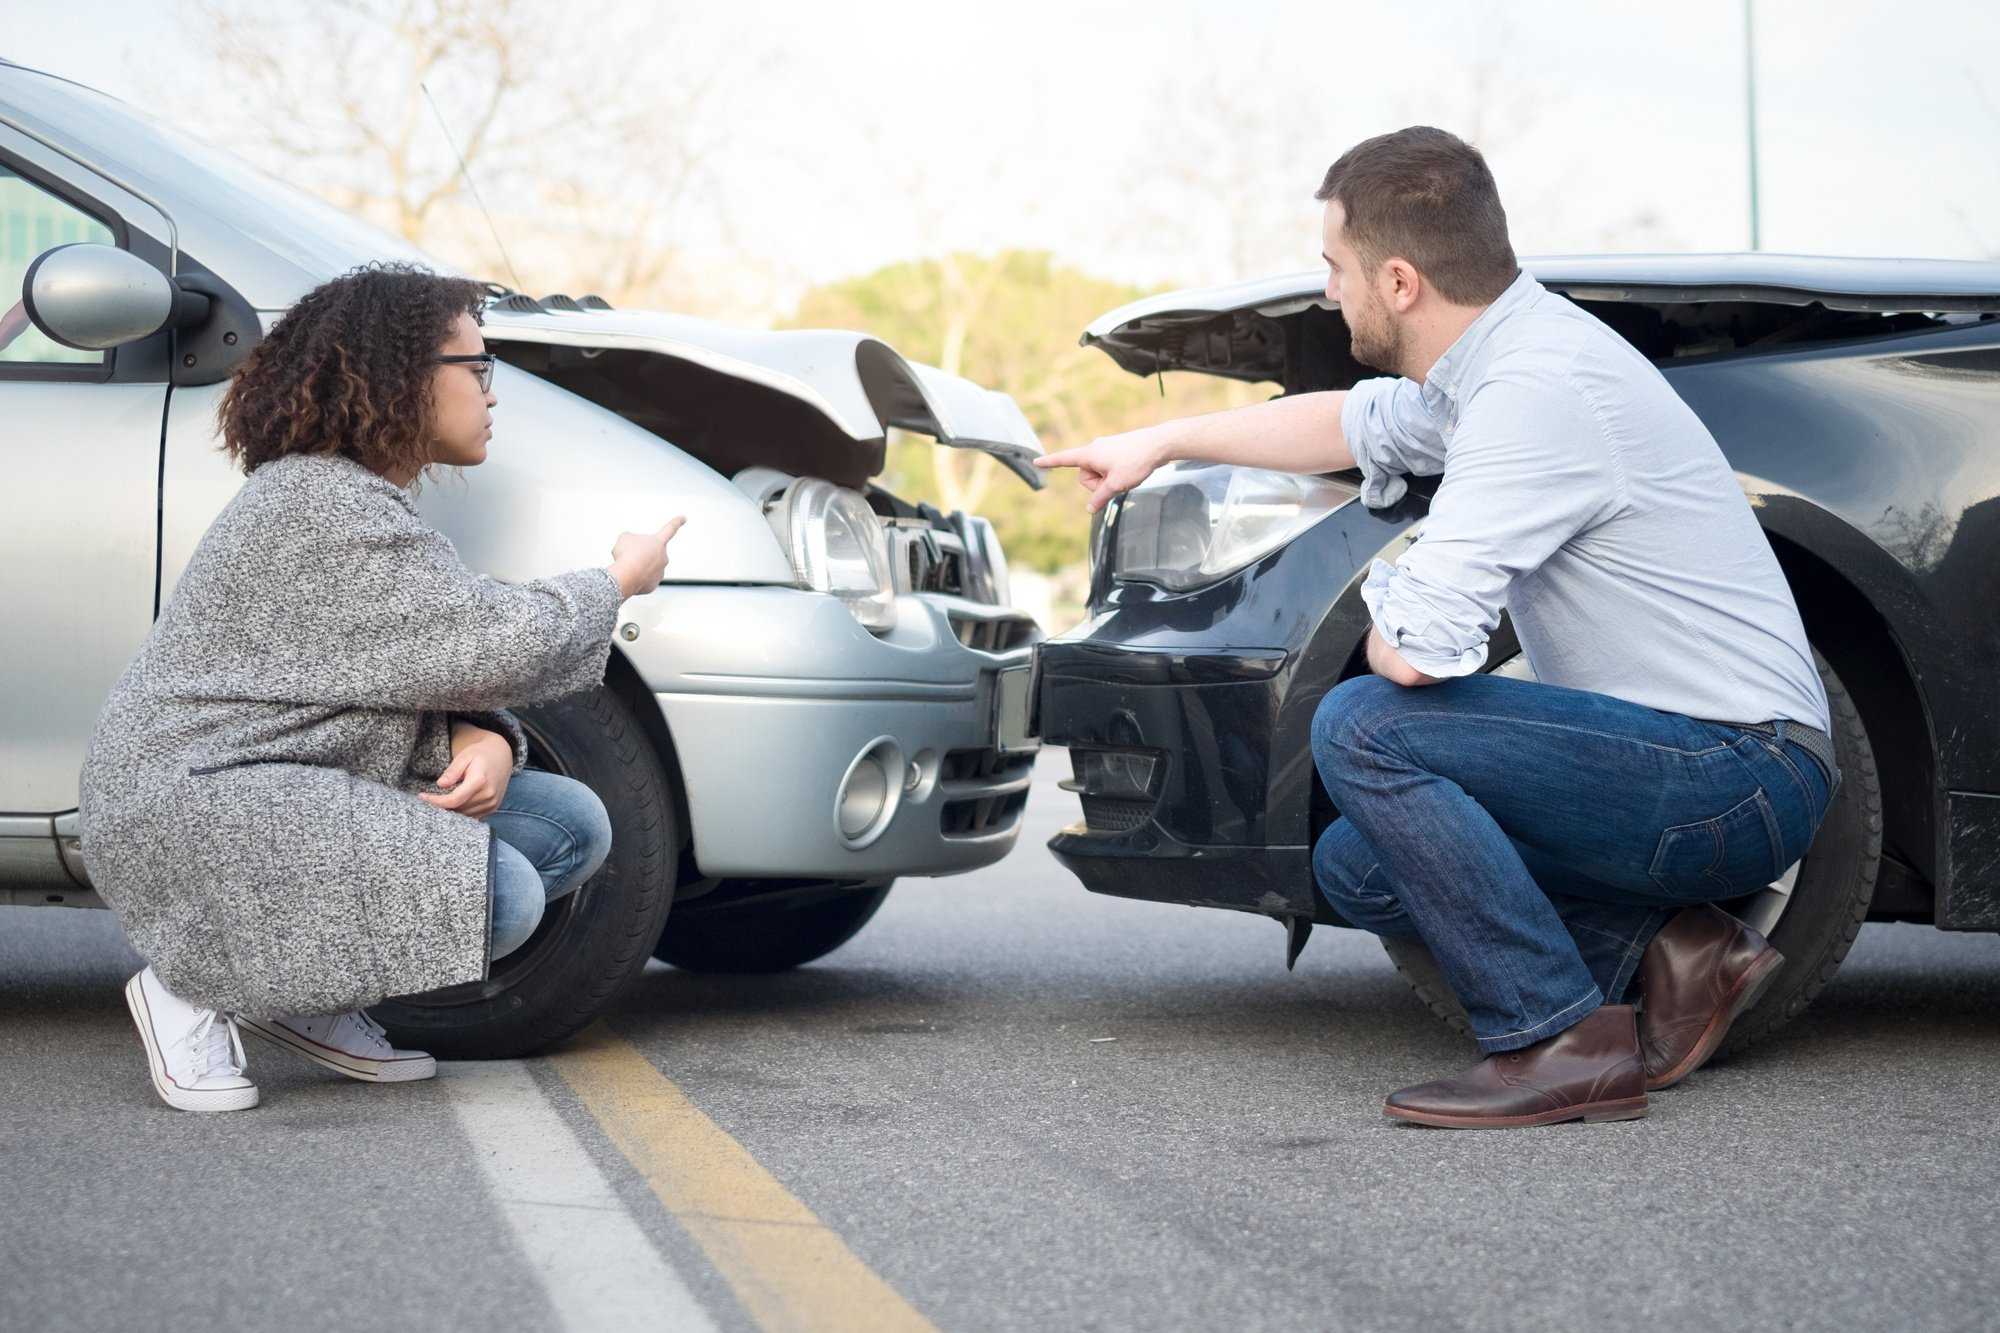 Suing For Property Damage Car Accident – How To Go About It